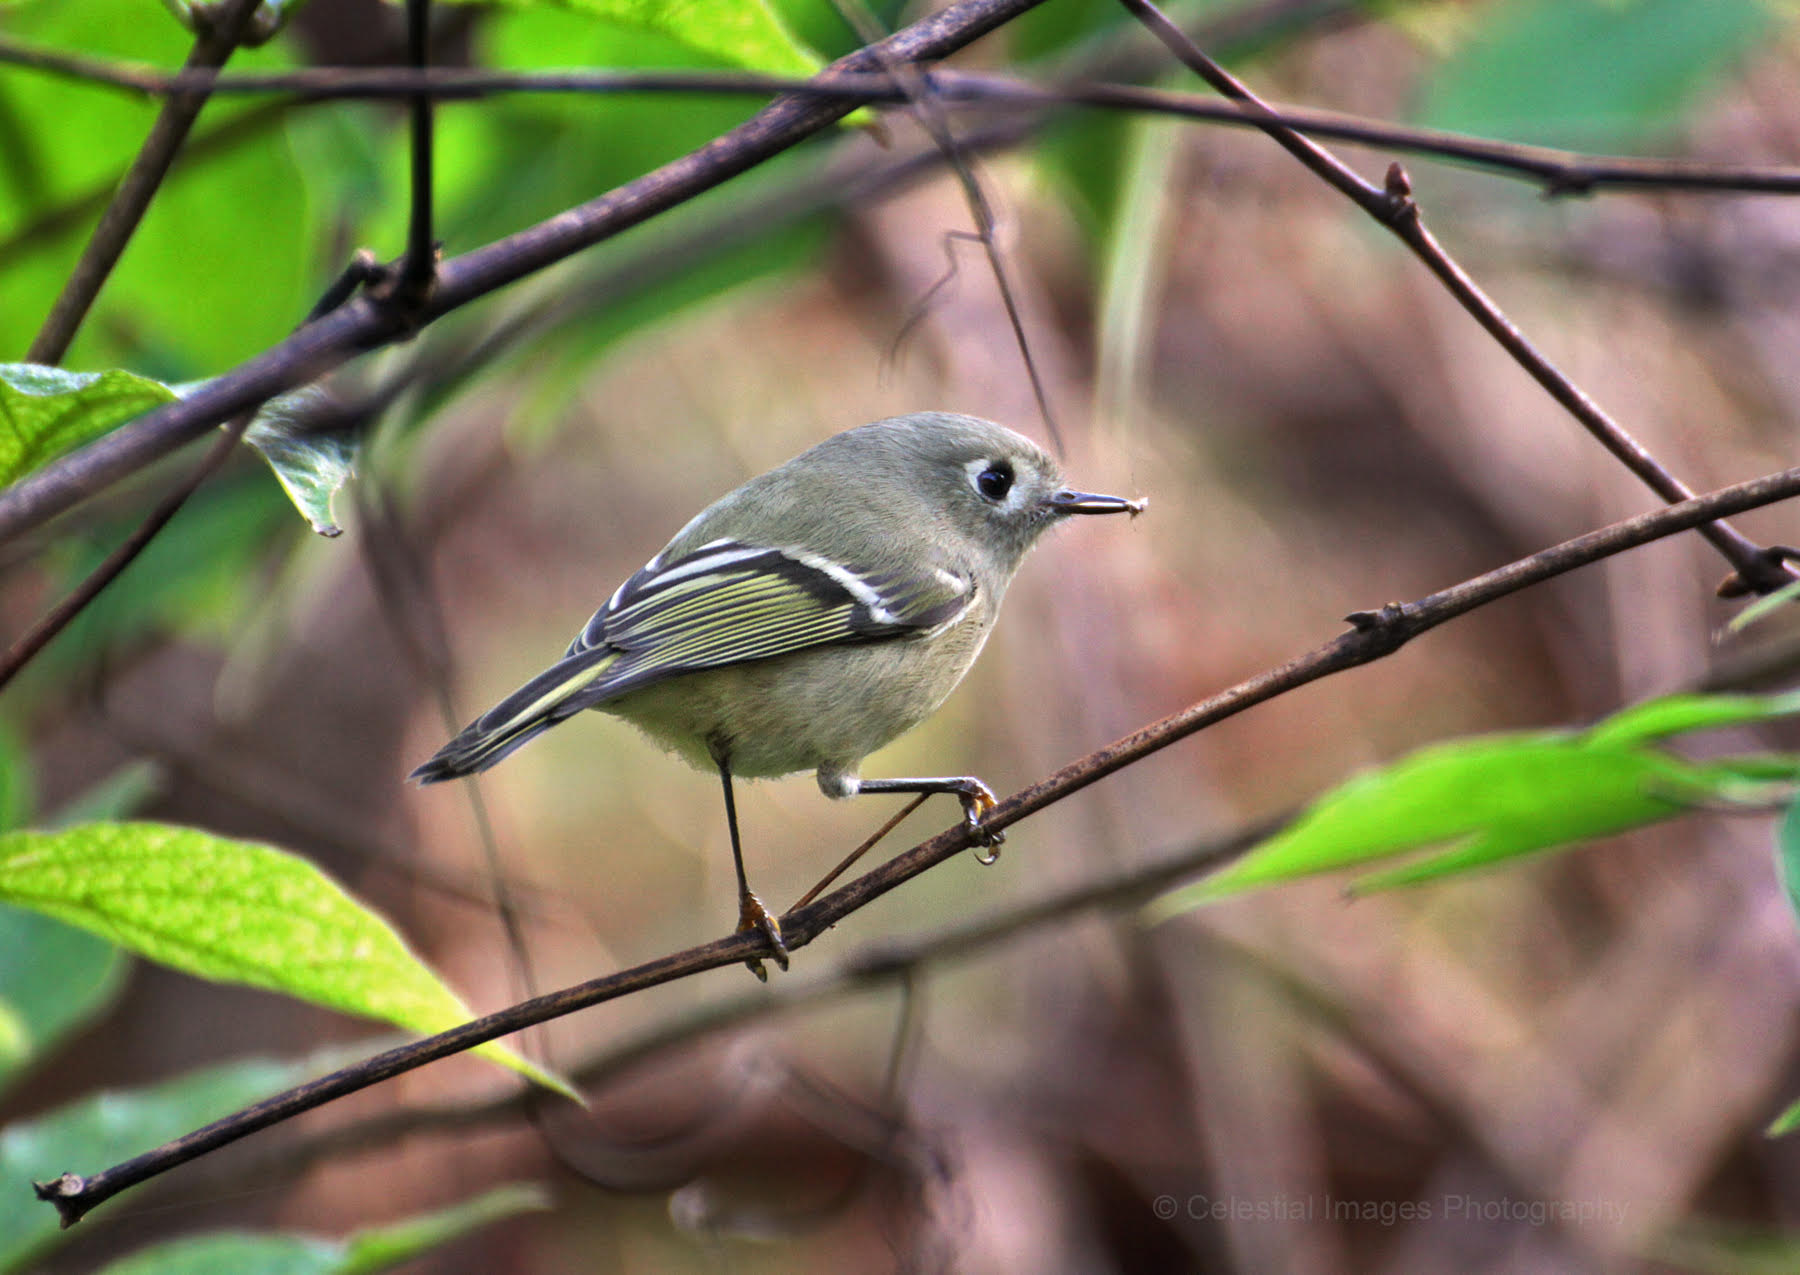 Ruby-crowned Kinglet feeding at Rushton November 3rd. Photo by Celeste Sheehan